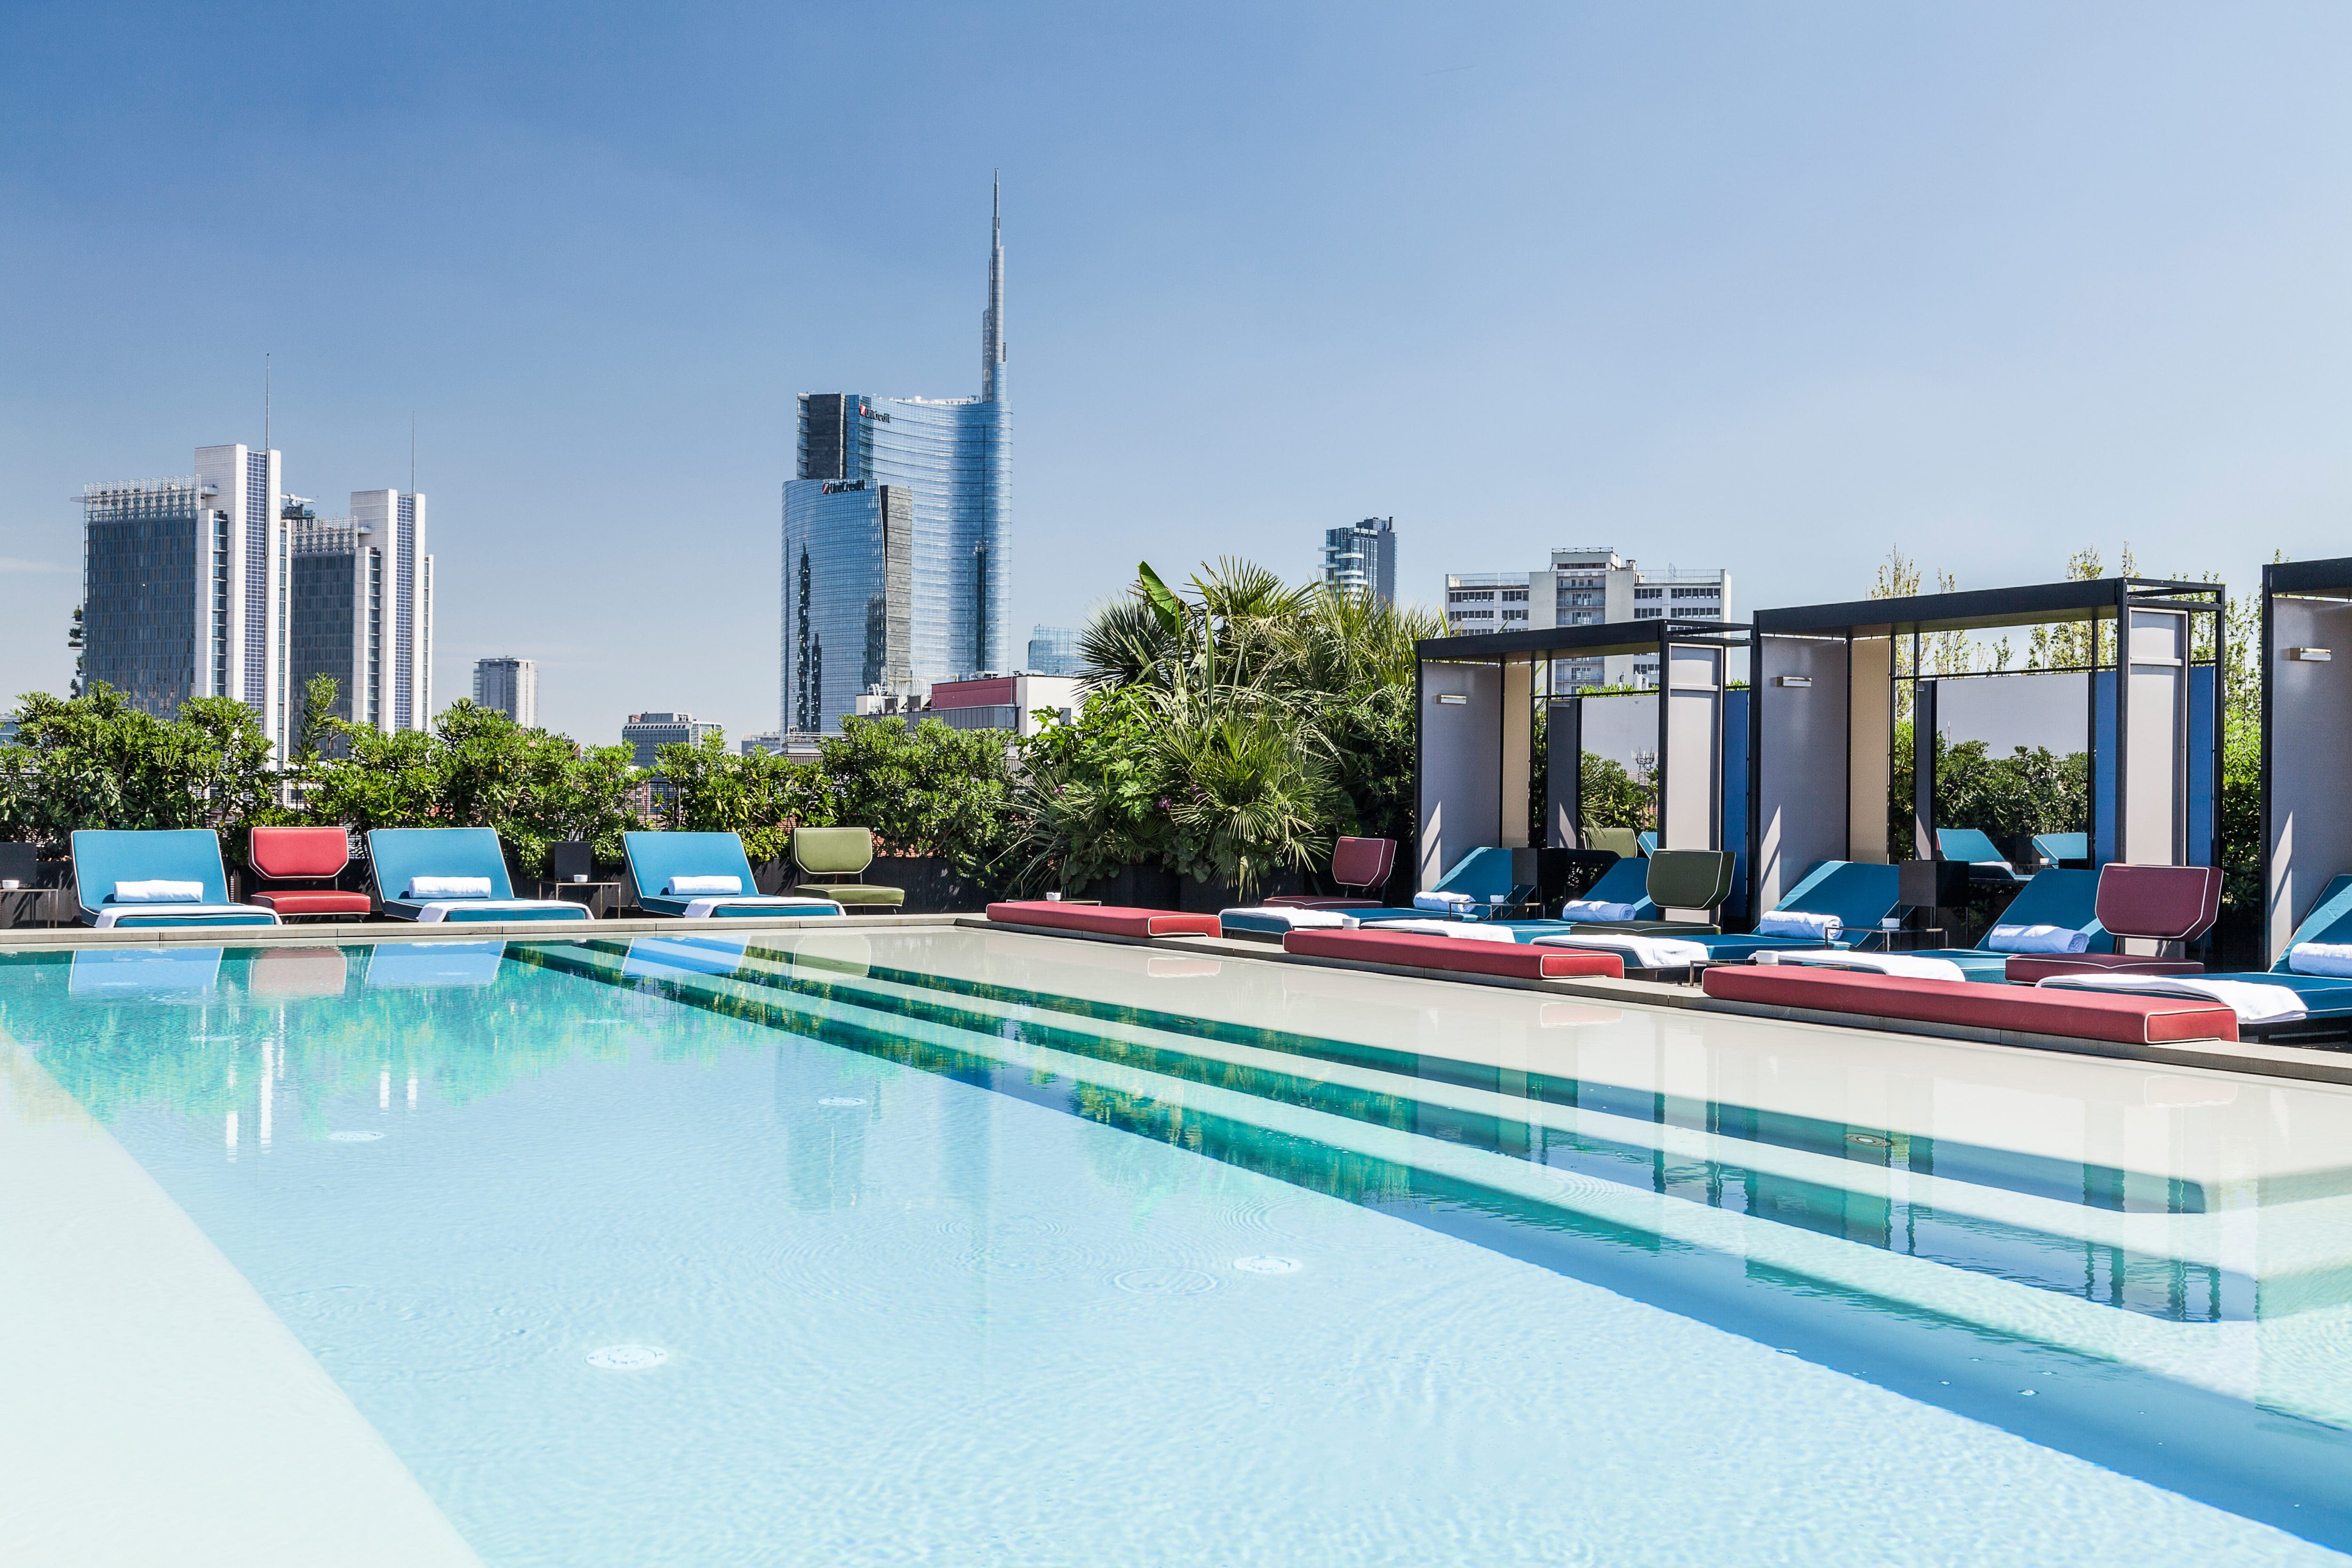 The pool and cabanas of Ceresio 7 overlooking the Milan city skyline